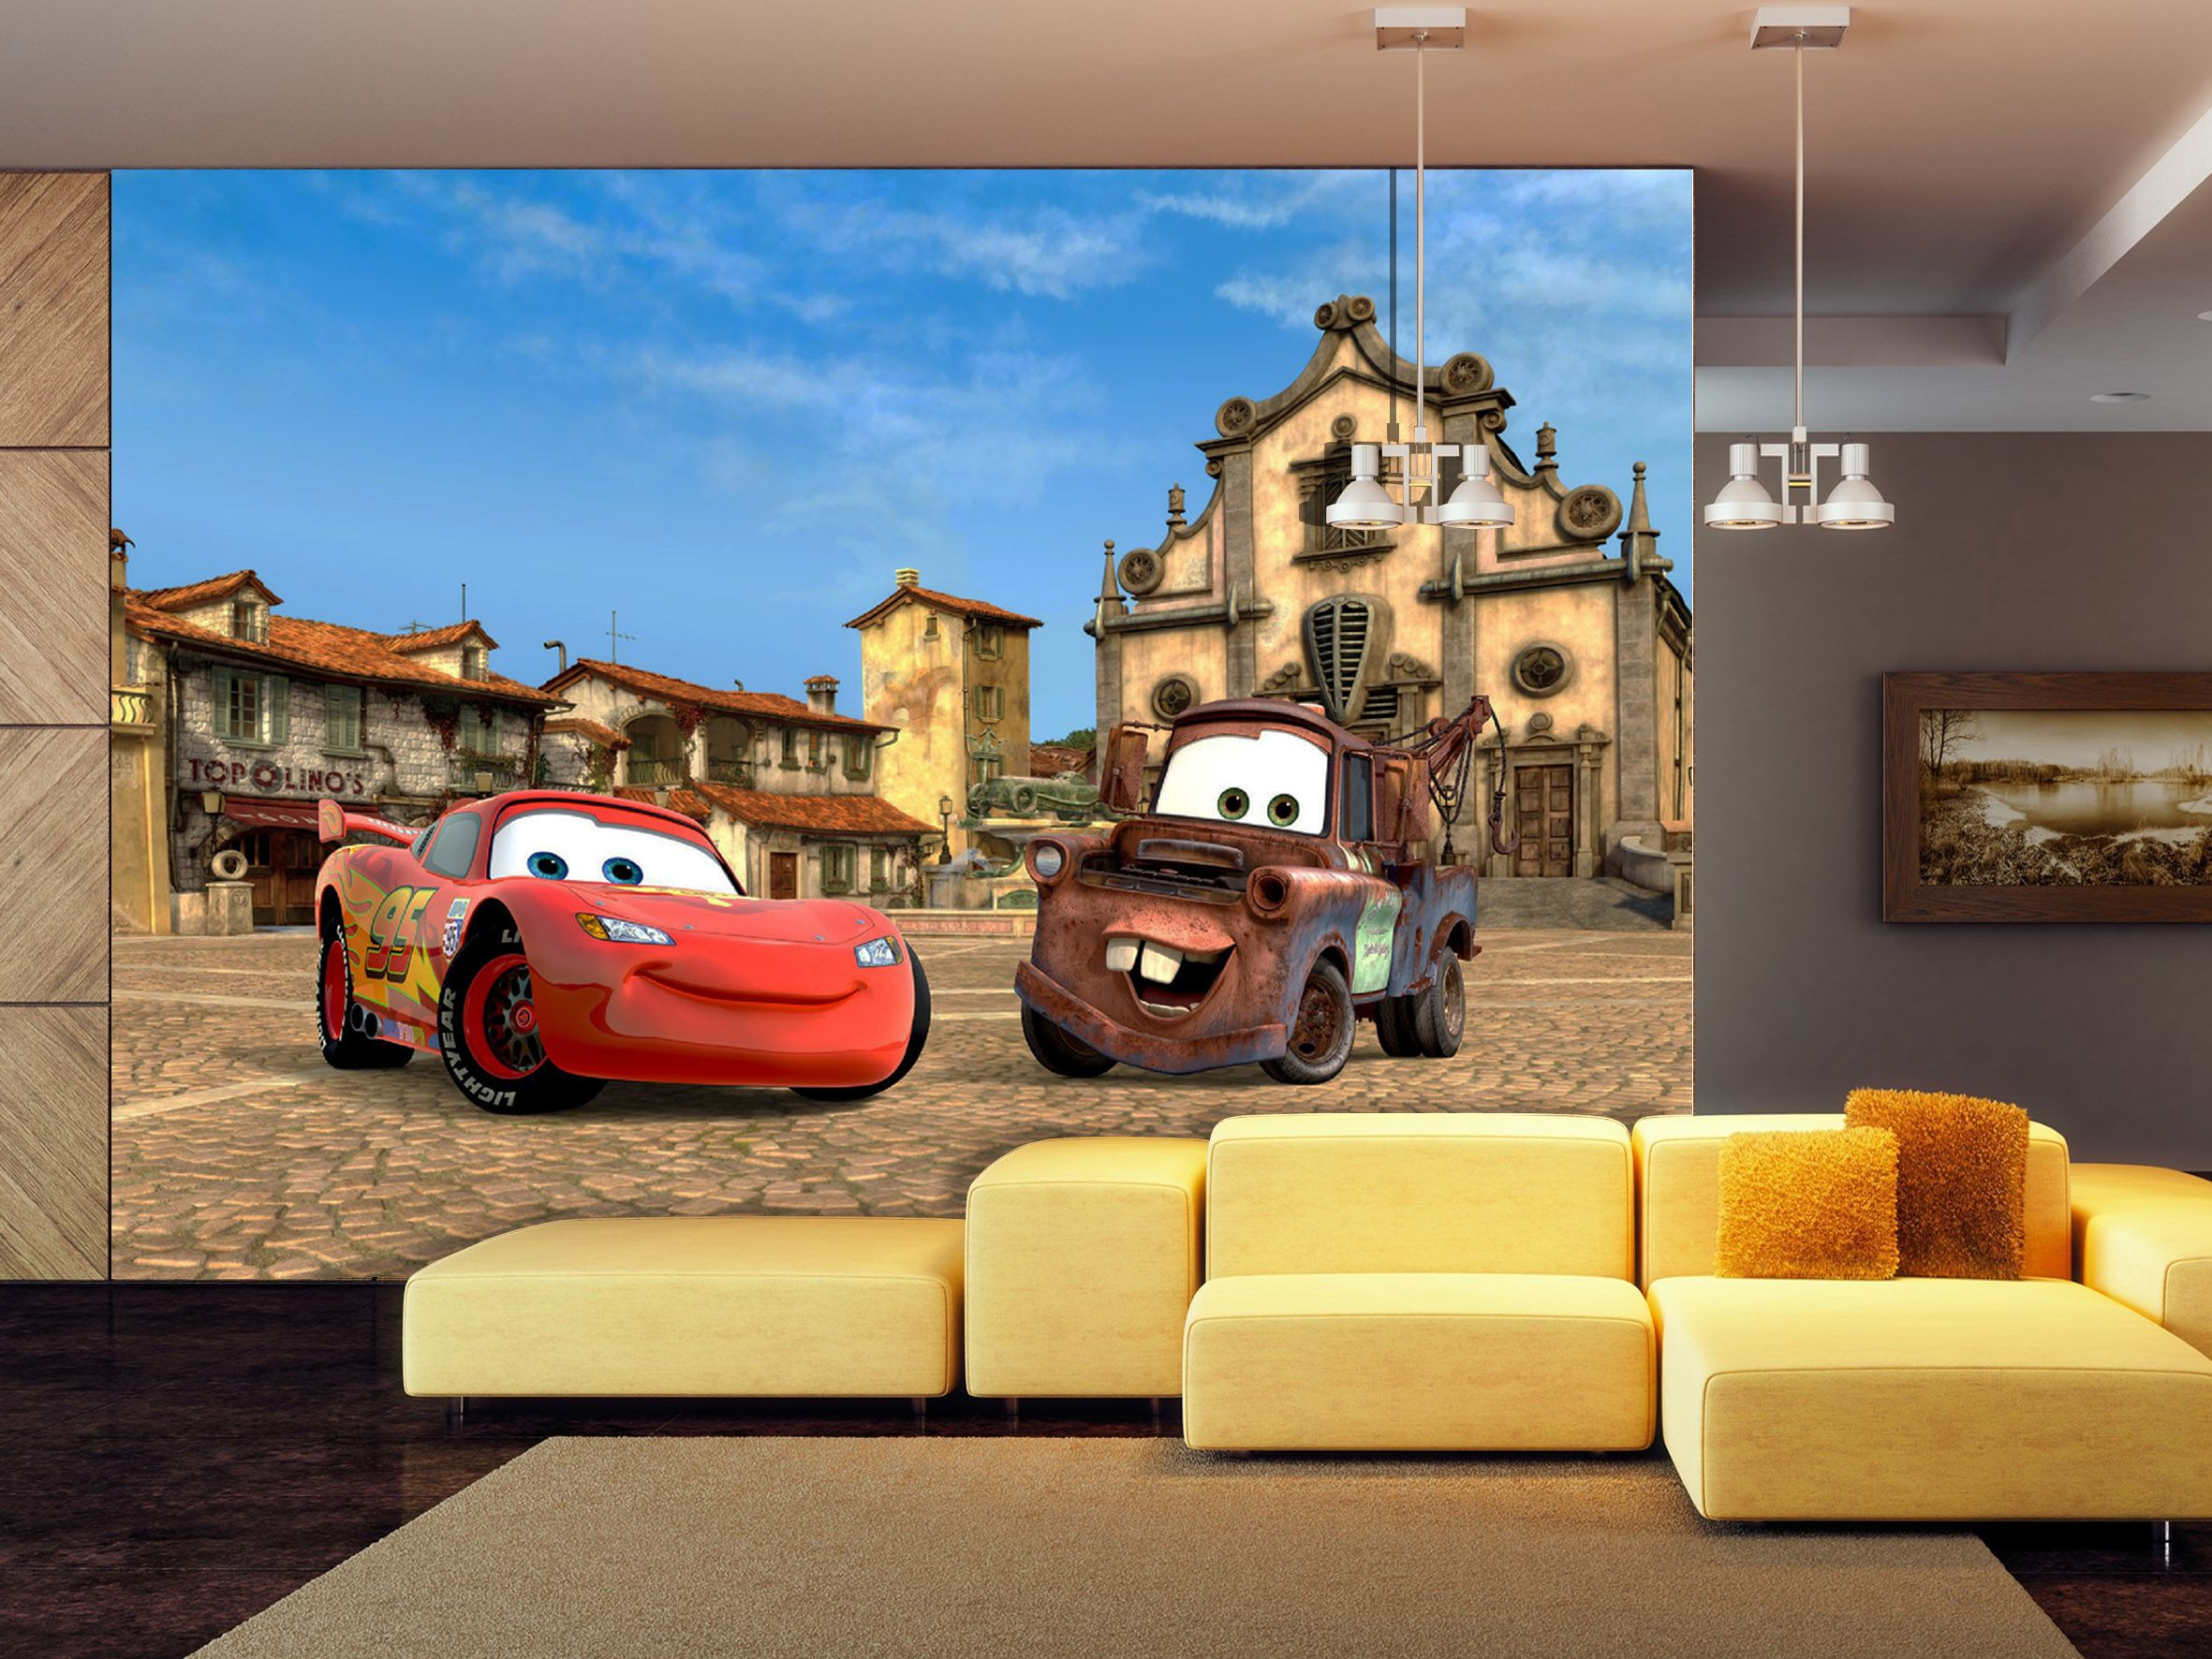 Disney cars wallpaper murals by wallandmore beautiful addition to disney cars kids wall murals by wallandmore amipublicfo Image collections